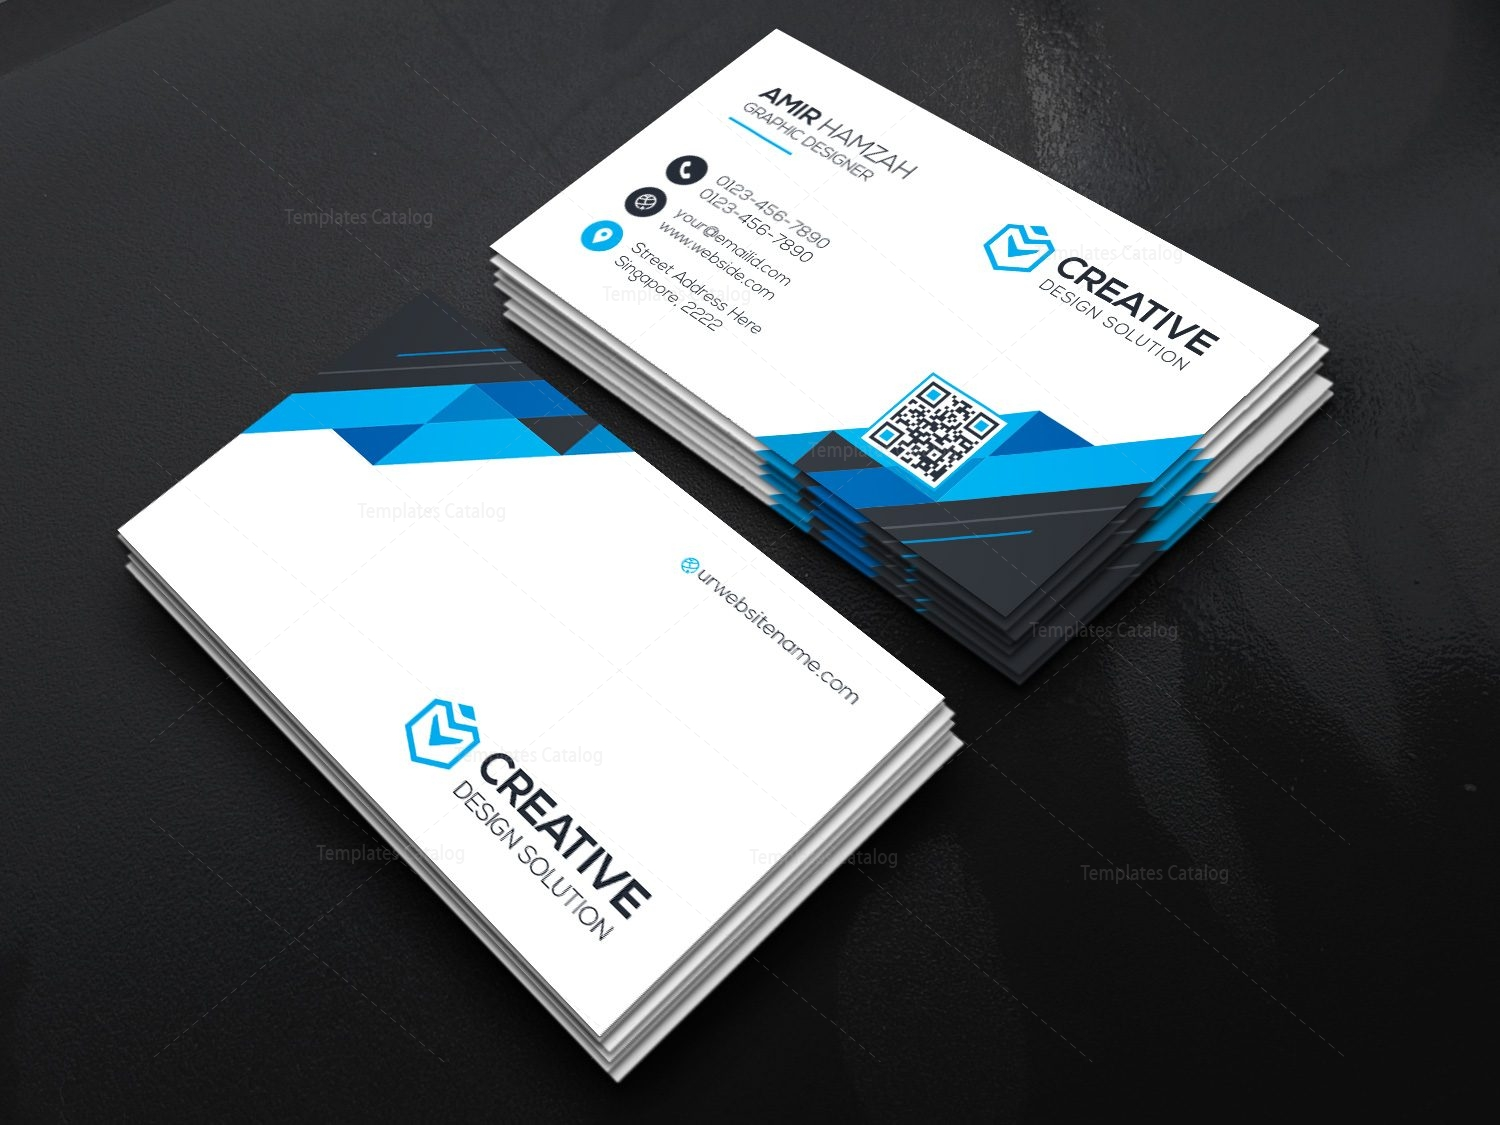 2018 technology business card 000473 template catalog 2018 technology business card 2 magicingreecefo Gallery